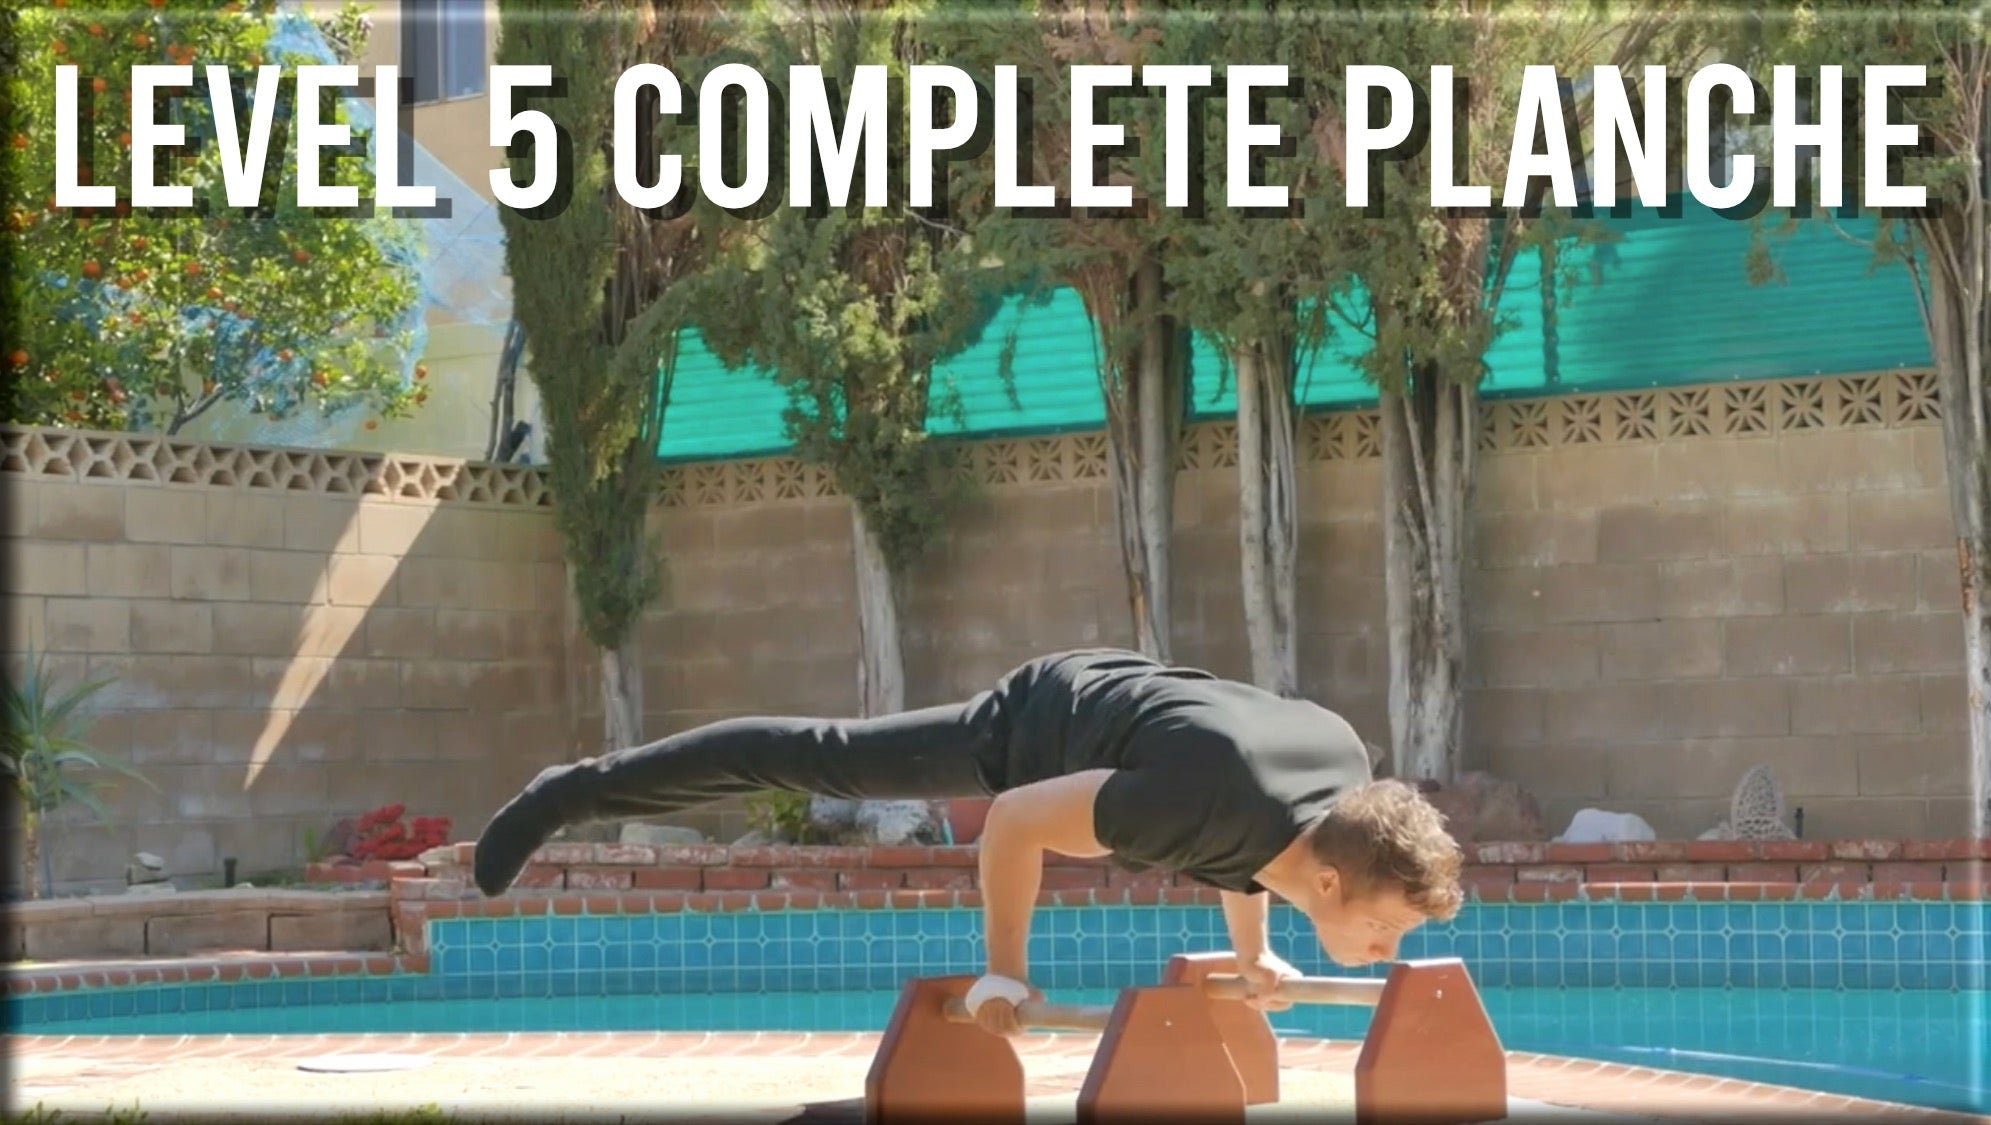 Level 5 Complete Planche